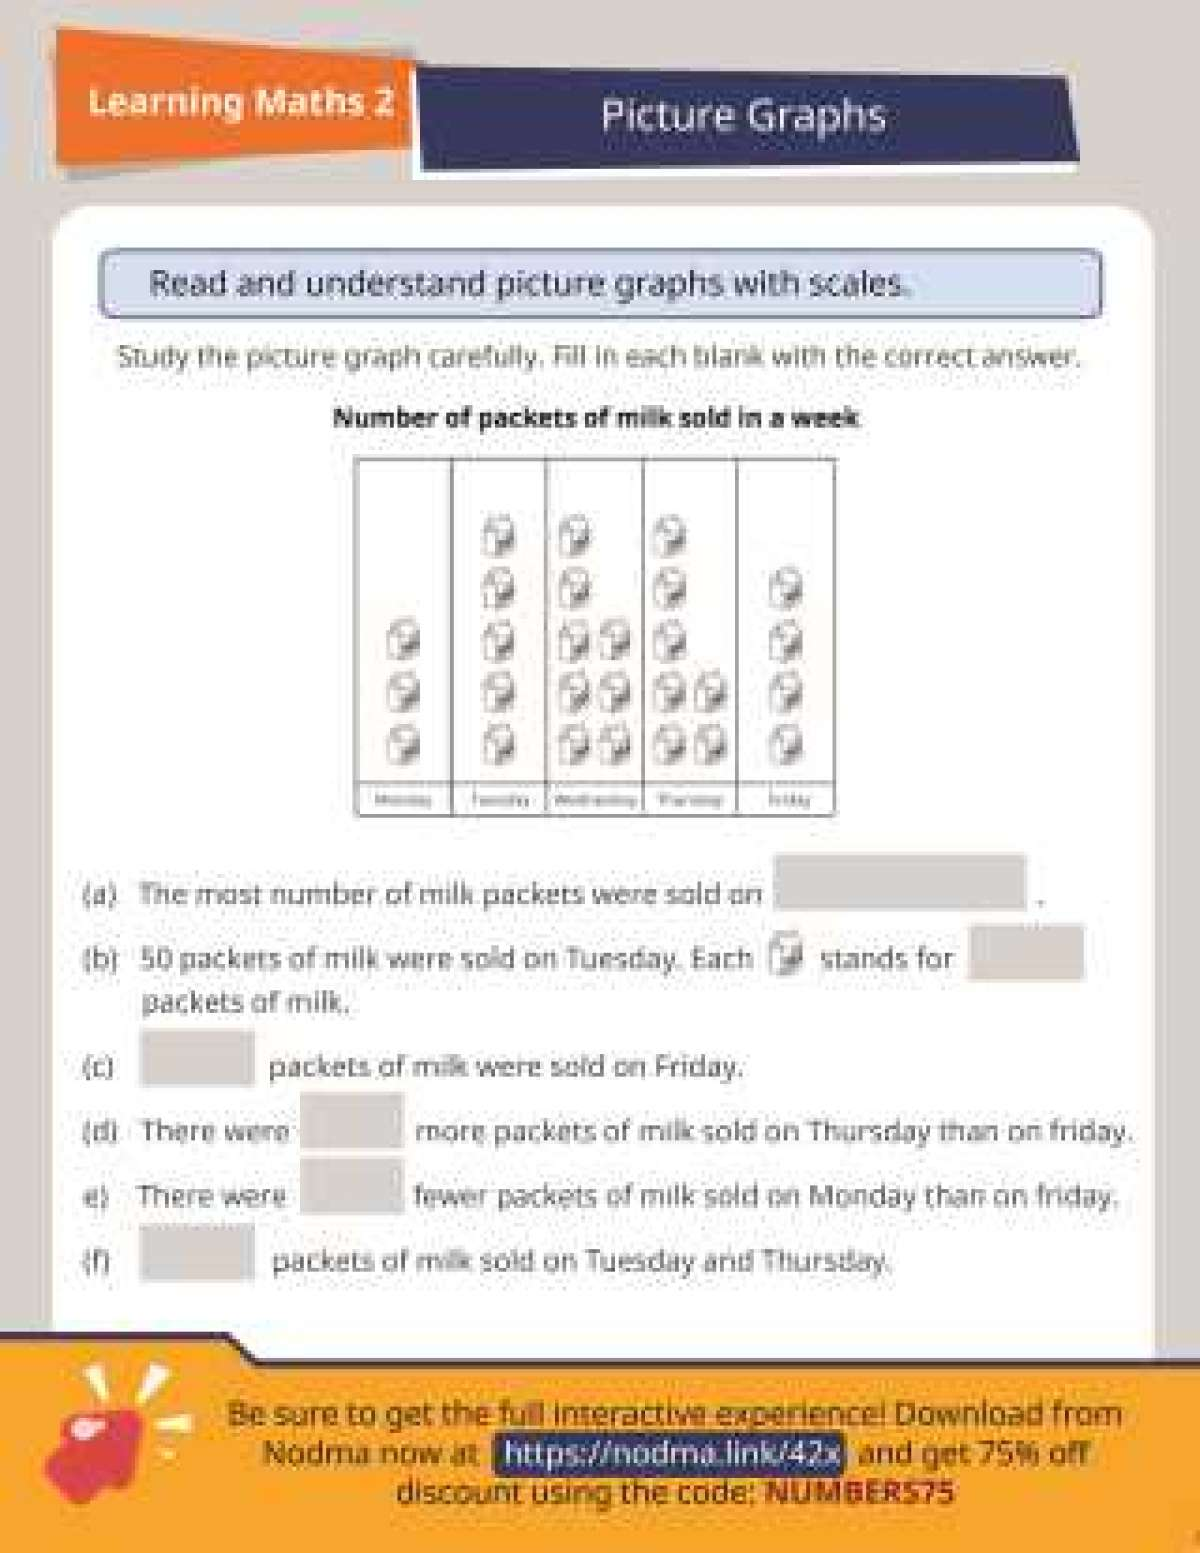 Second Grade Math Activities and Printables - FamilyEducation